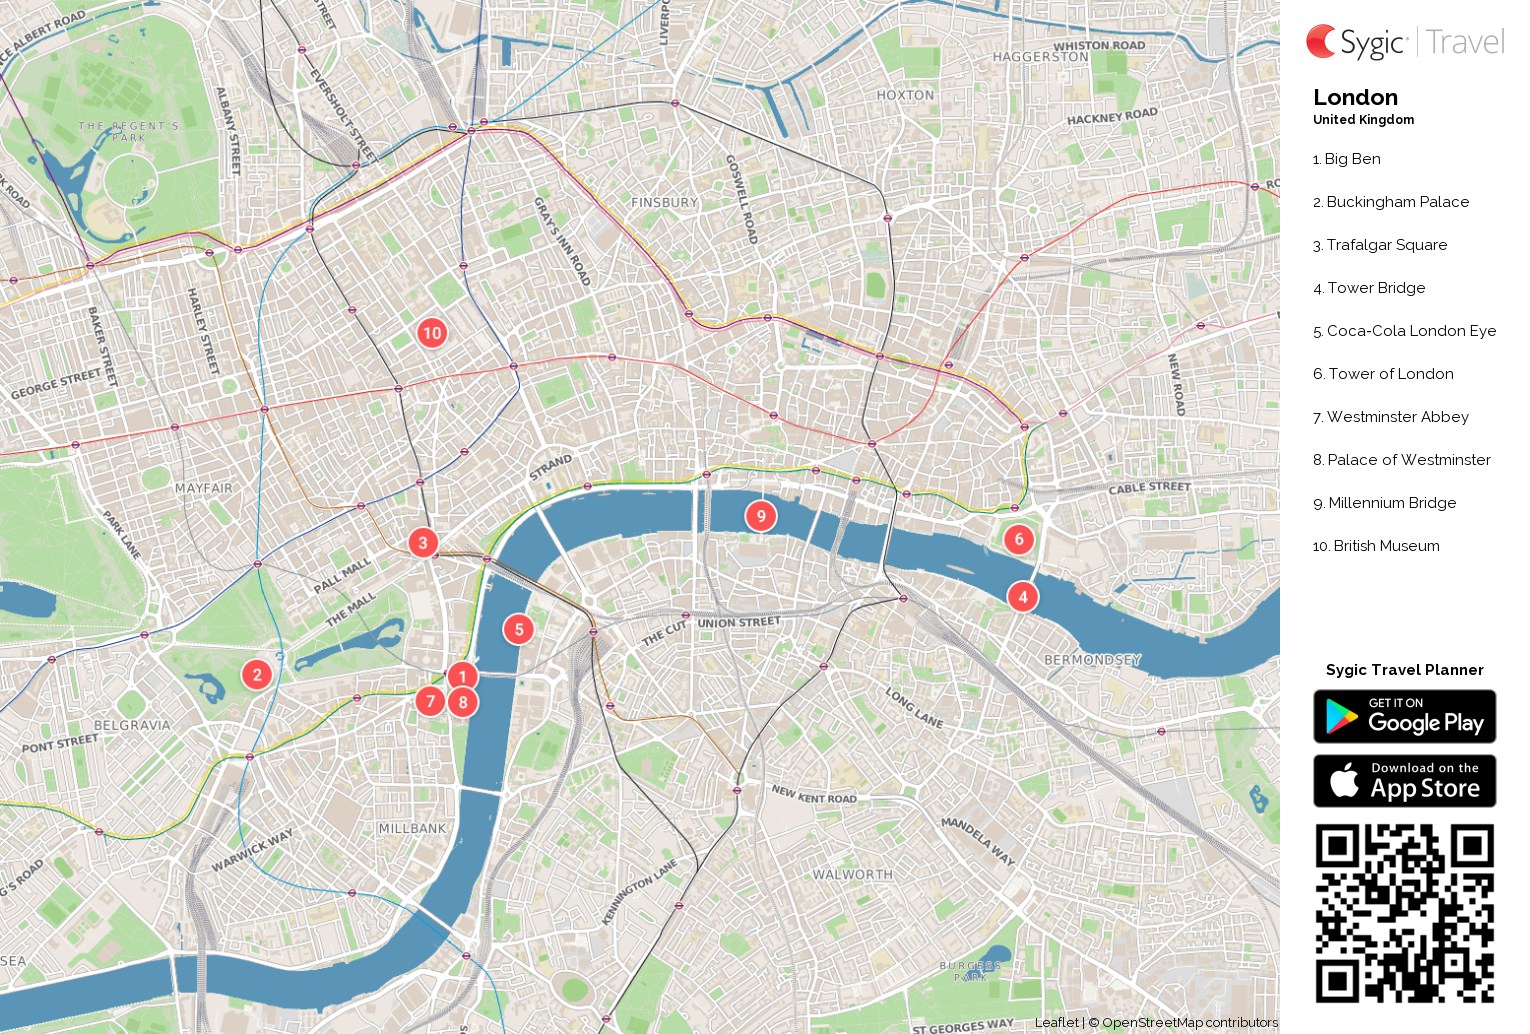 image regarding Printable Map of London known as London Printable Vacationer Map Sygic Drive